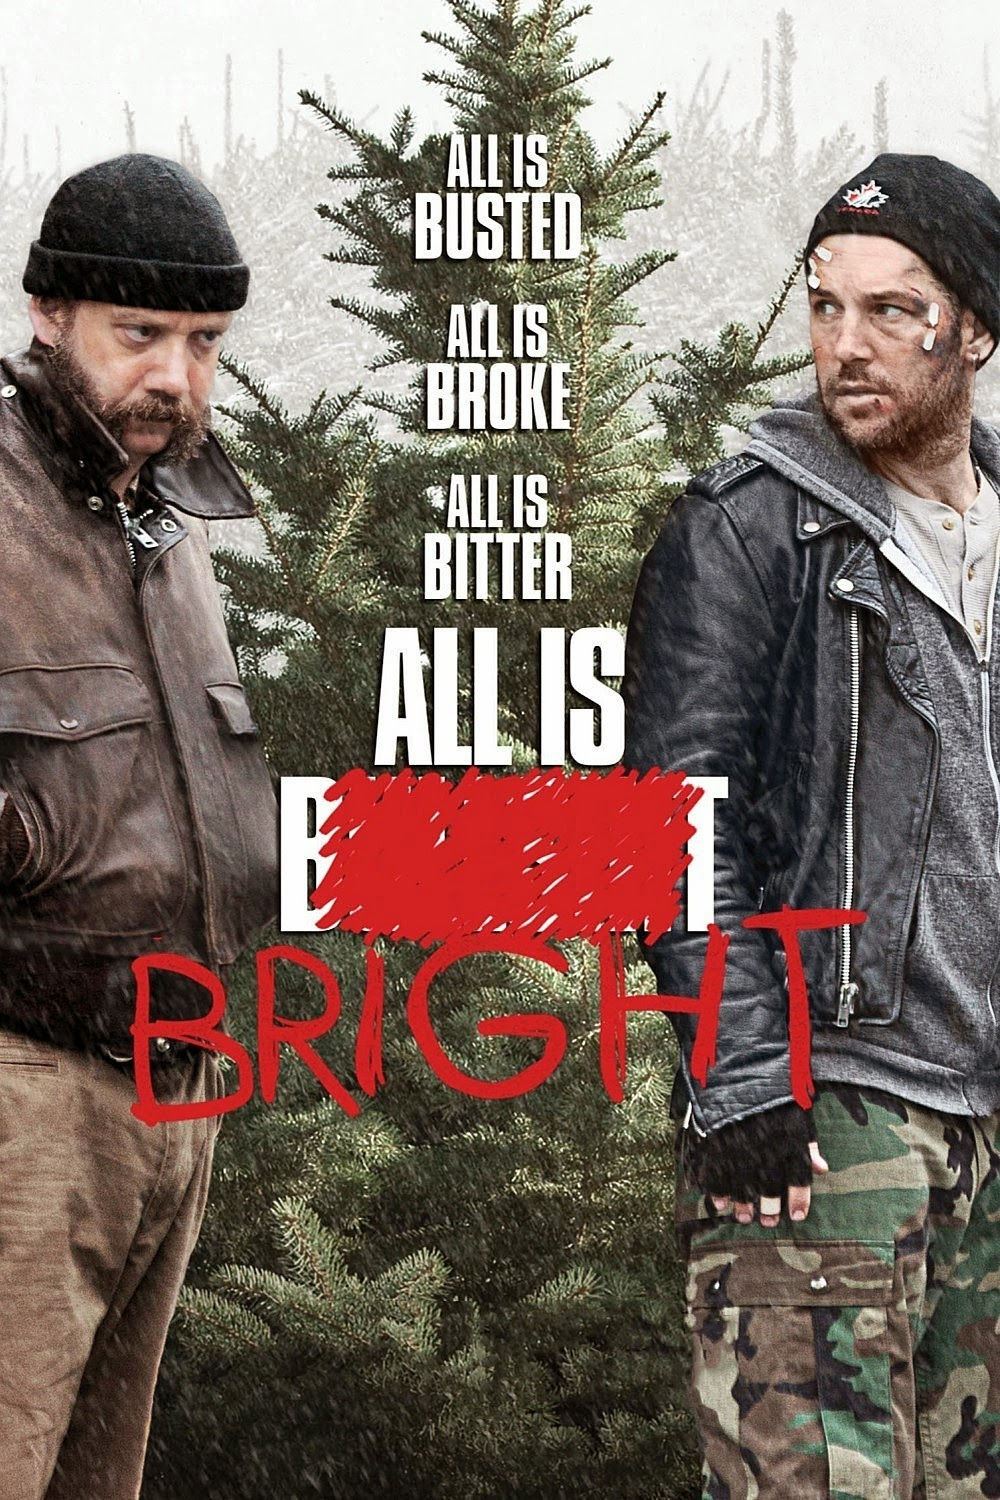 Almost Christmas Movie.So It Goes All Is Bright Aka Almost Christmas 2013